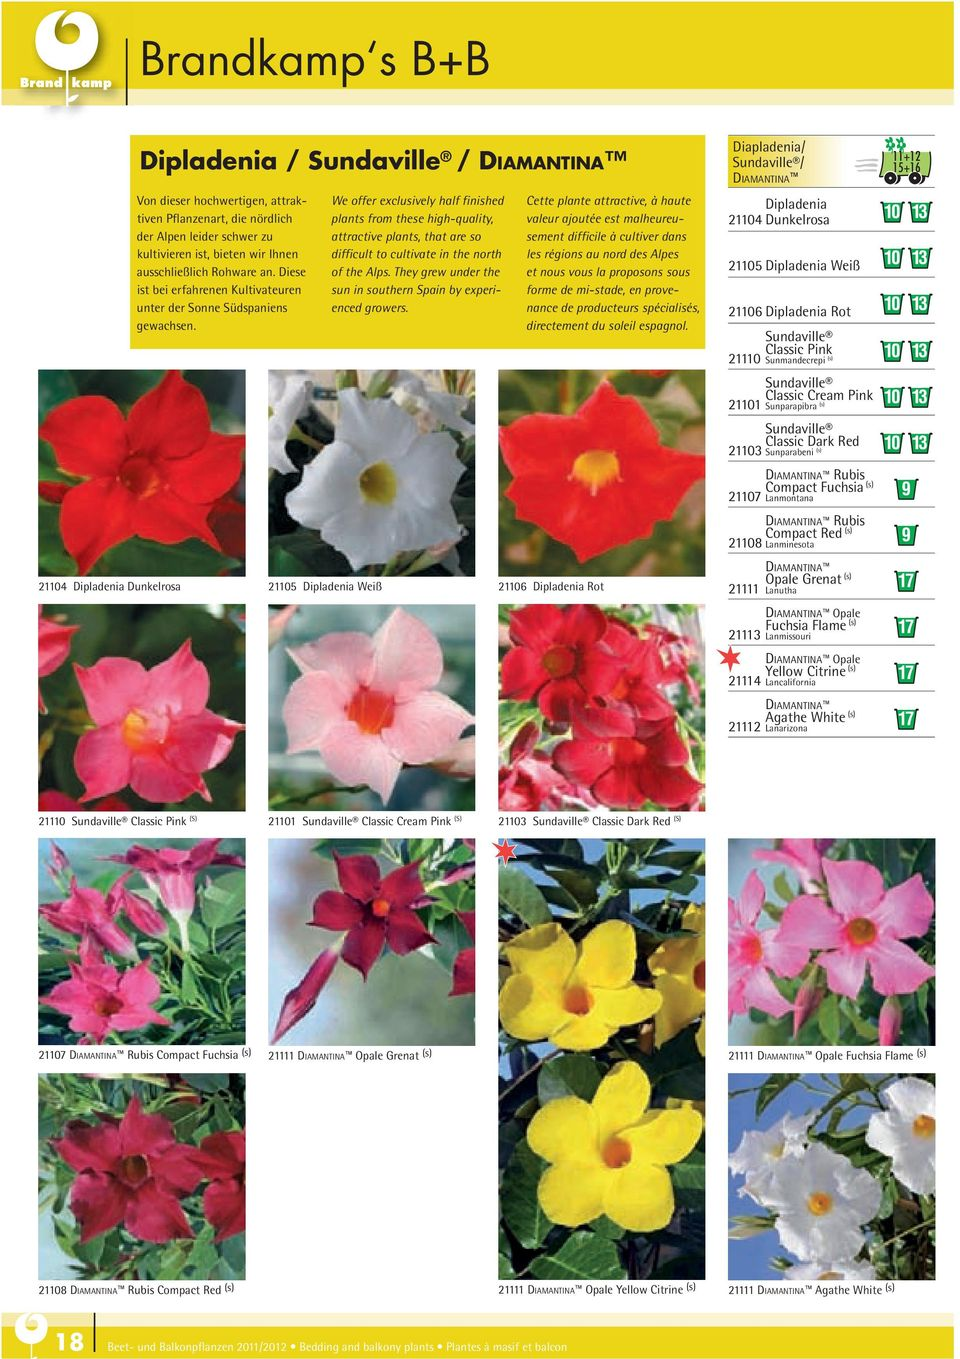 21105 Dipladenia Weiß We offer exclusively half finished plants from these high-quality, attractive plants, that are so difficult to cultivate in the north of the Alps.